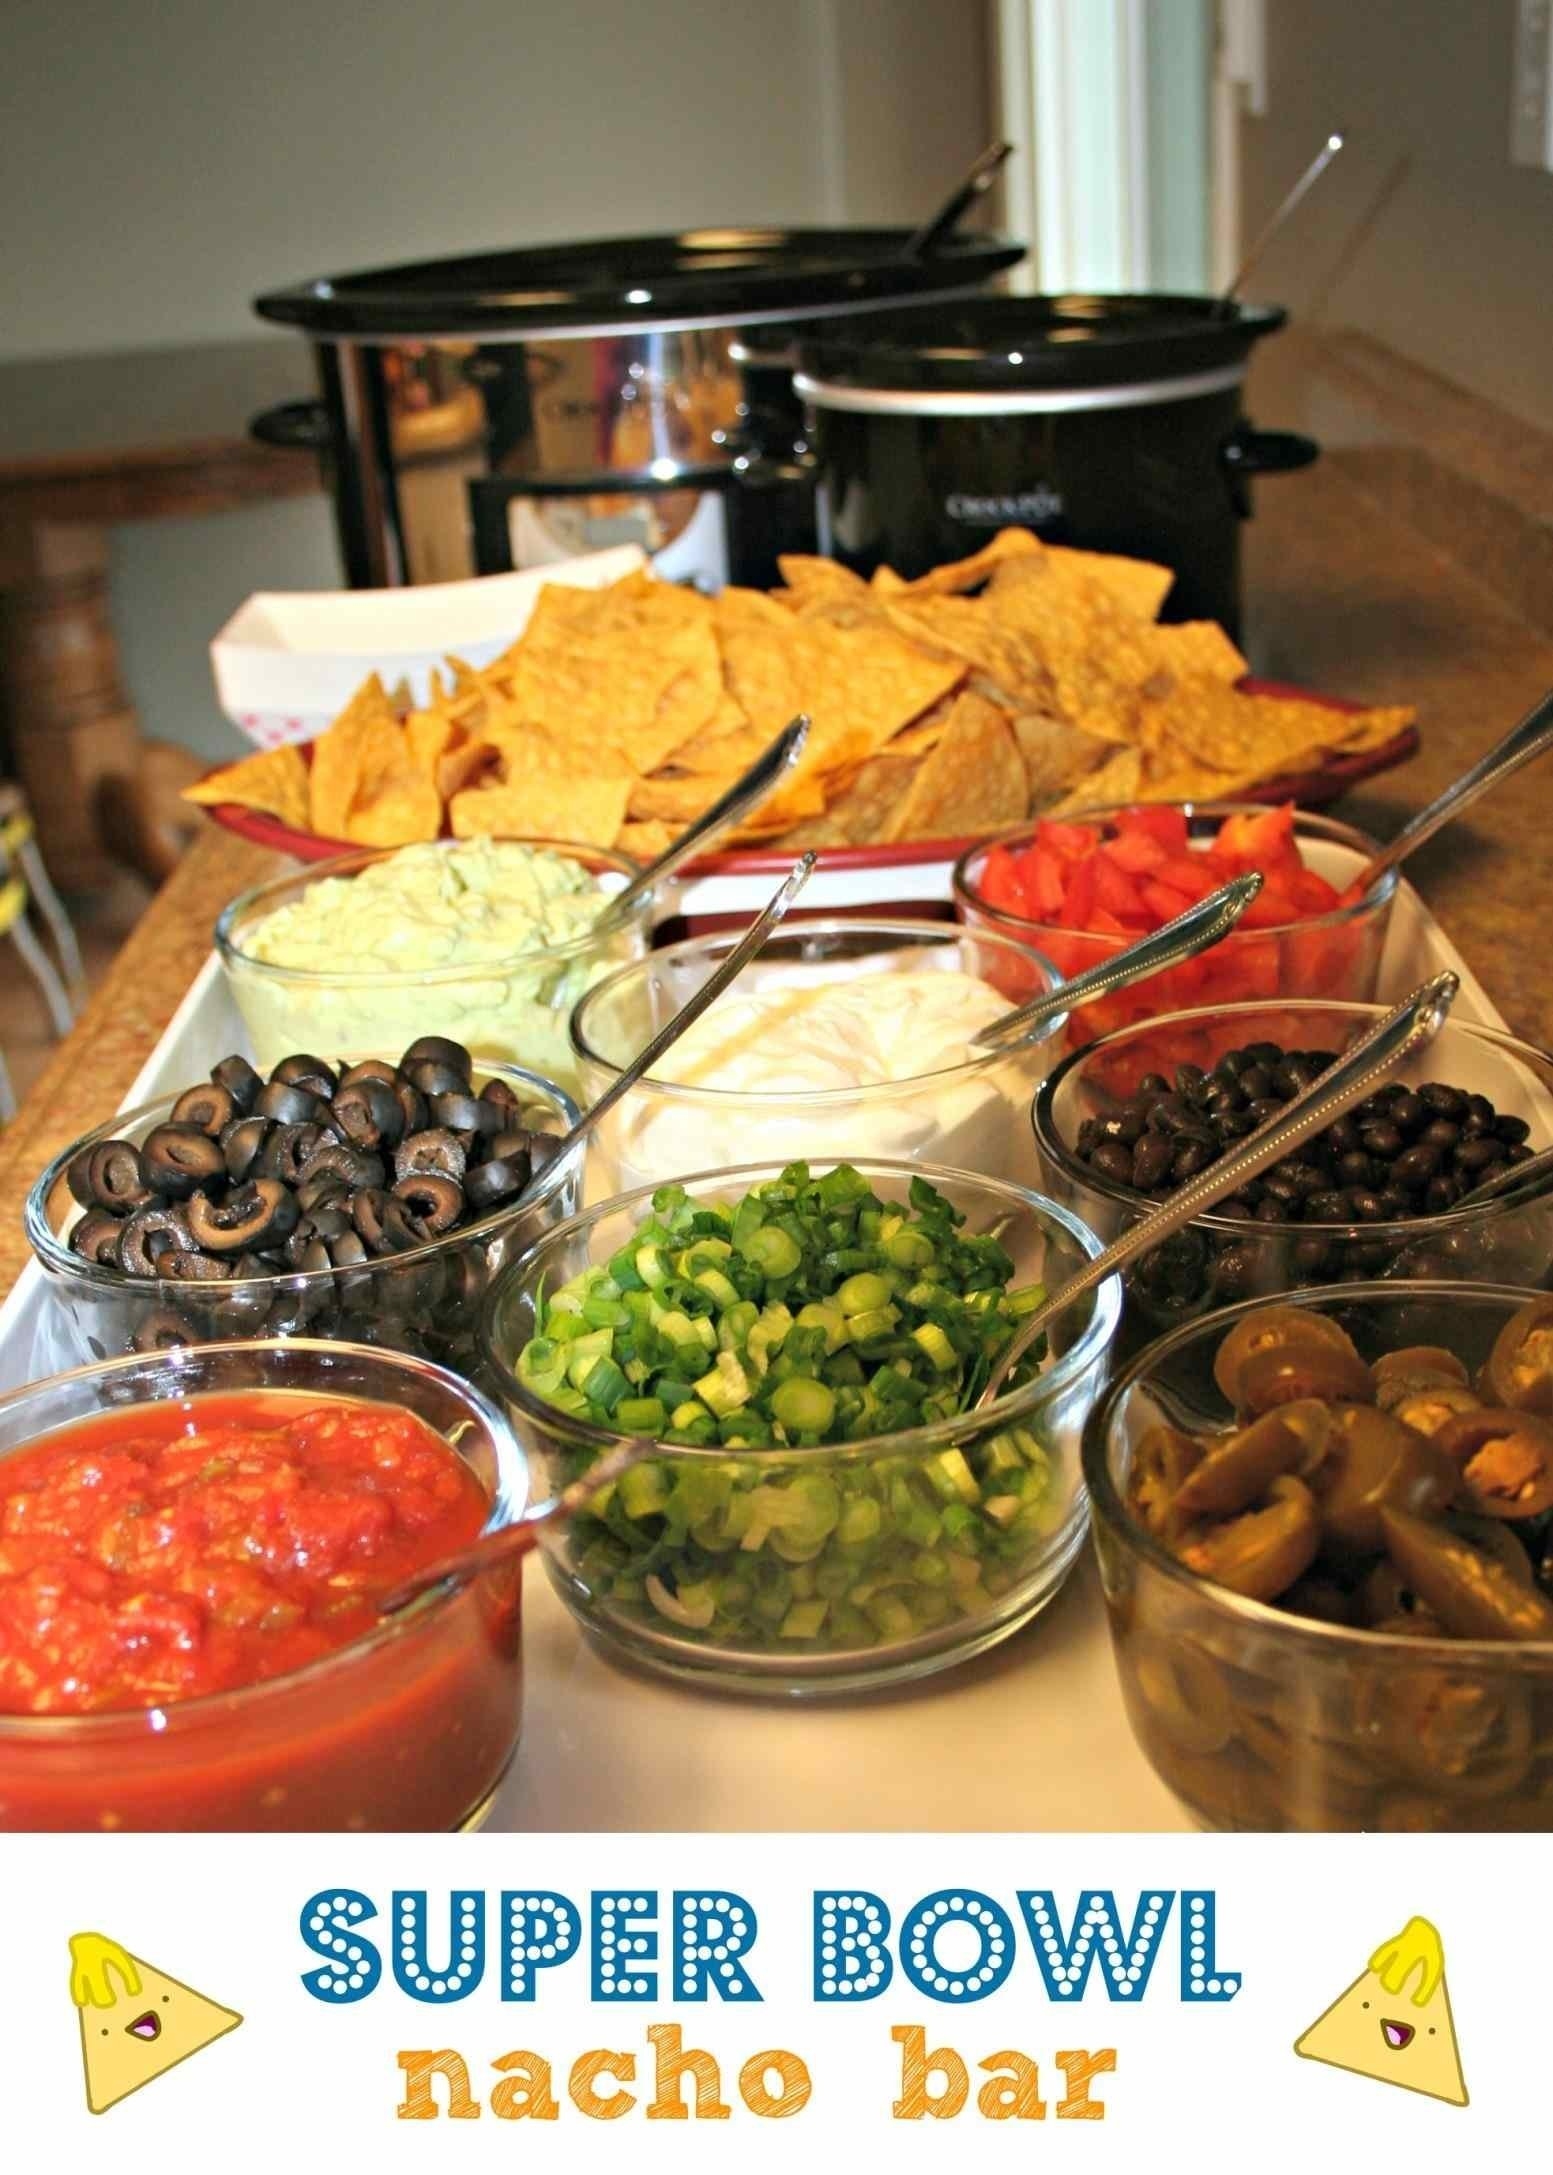 10 Elegant Party Food Ideas For Adults ideas for adults birthday easy nn teen bbs easy party food ideas for 2020